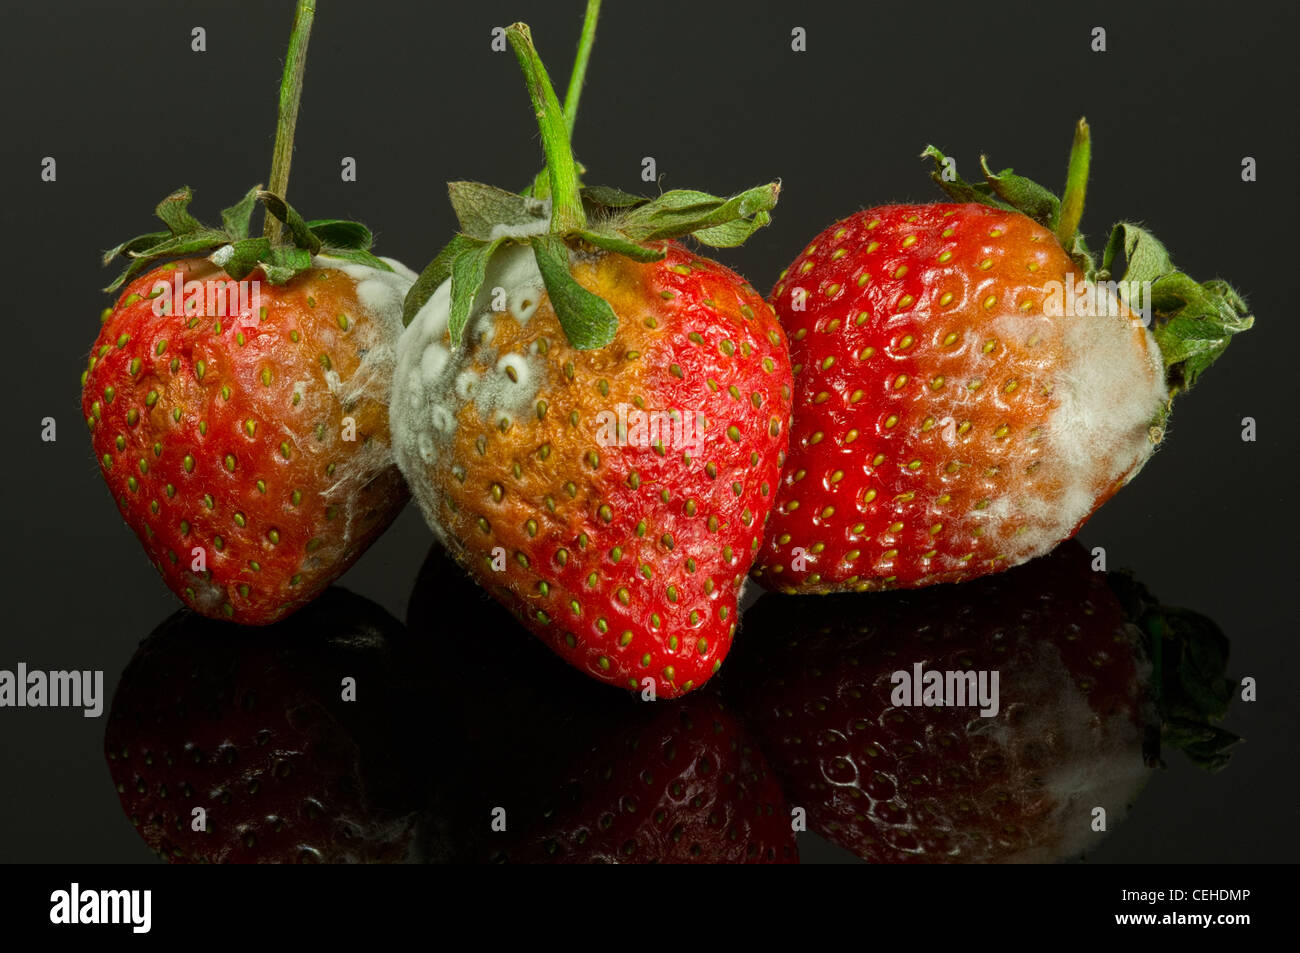 Rotten Strawberries Images